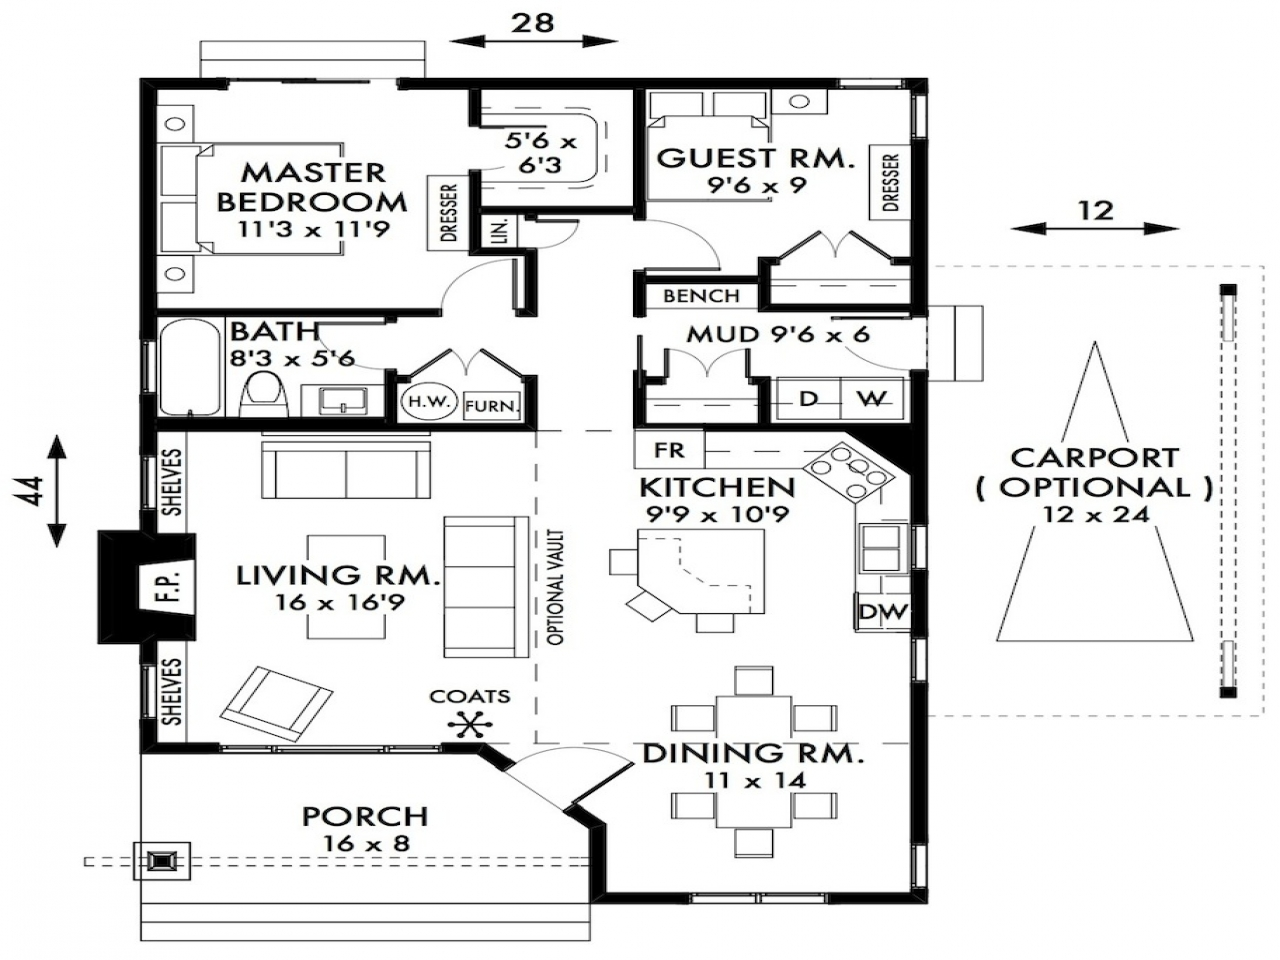 2 bedroom cottage plans 2 bedroom plans small cottage 2 bedroom cottage house plans 2 bedroom cottage treesranch com 9284